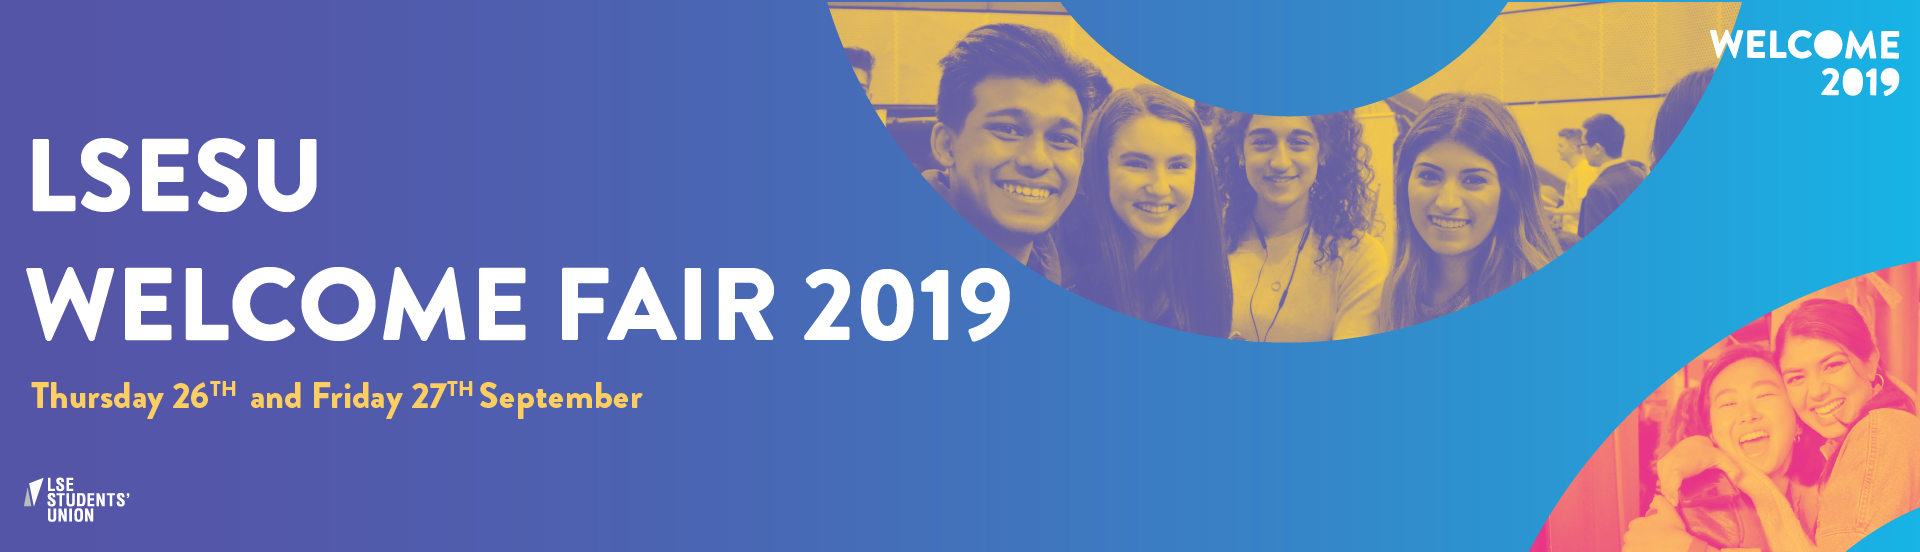 LSESU Welcome Fair 2019